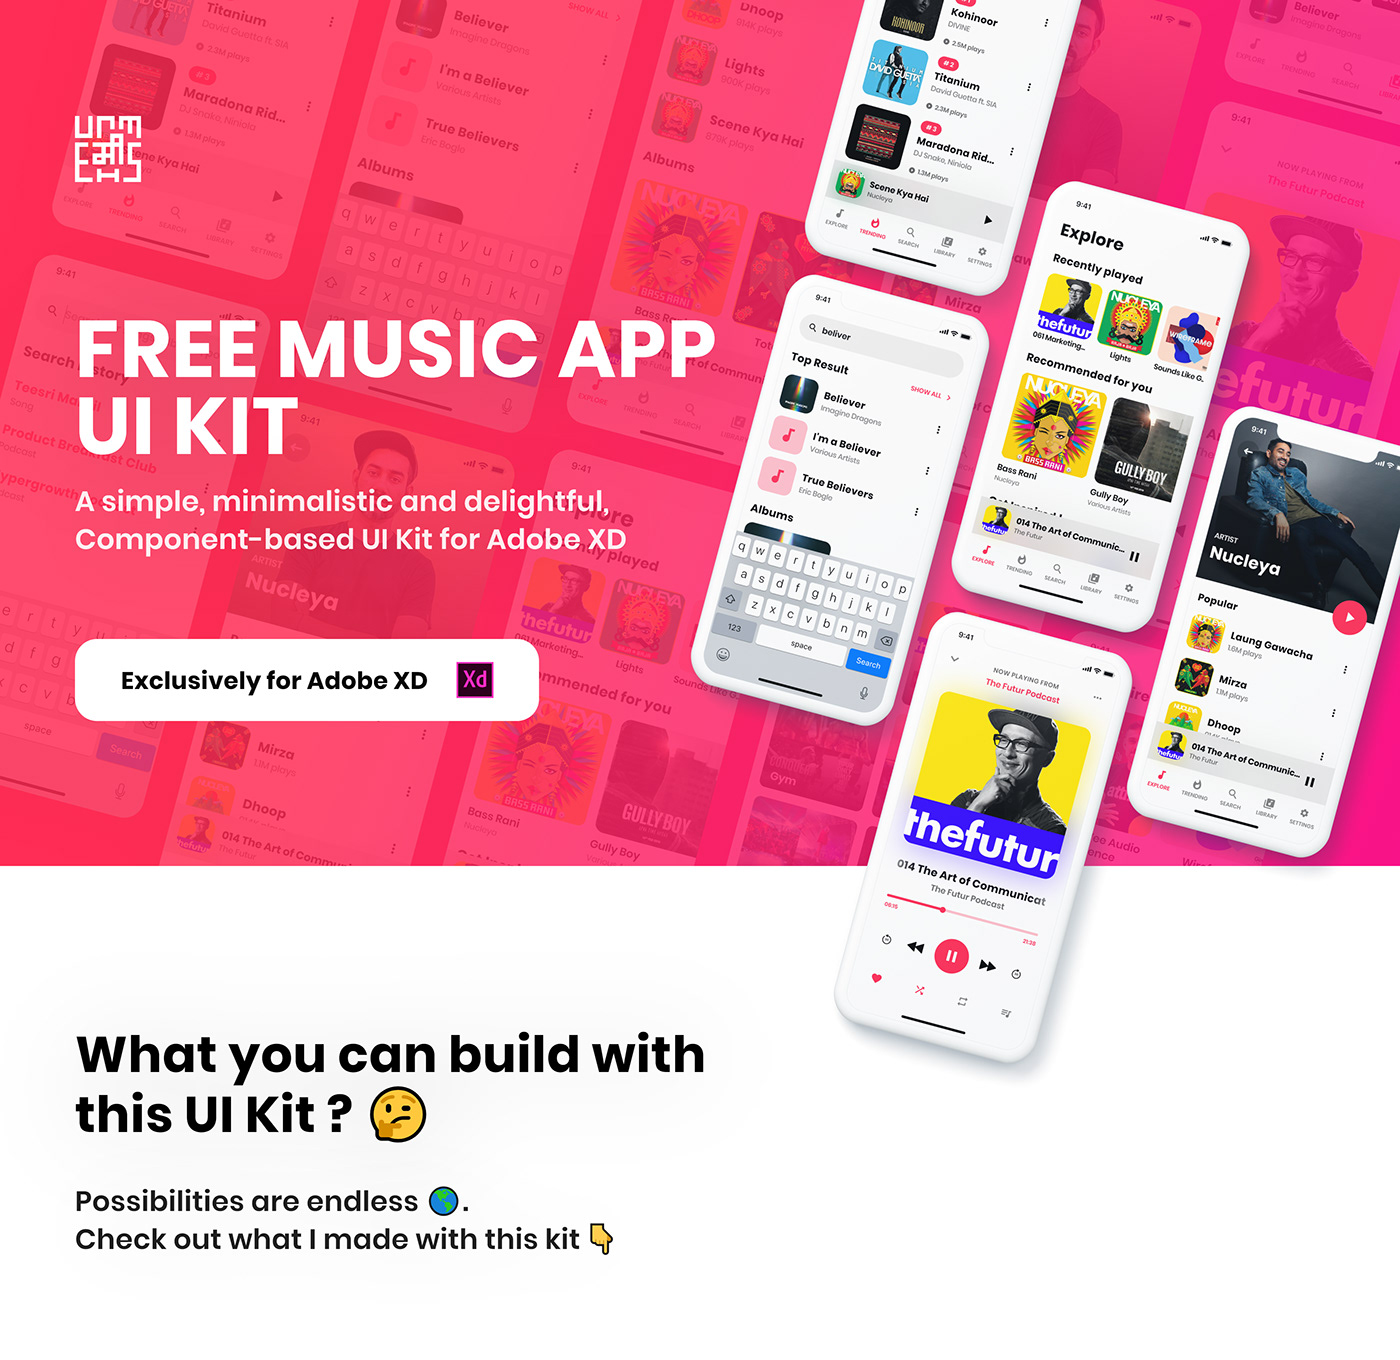 Free Music App UI Kit for Adobe XD